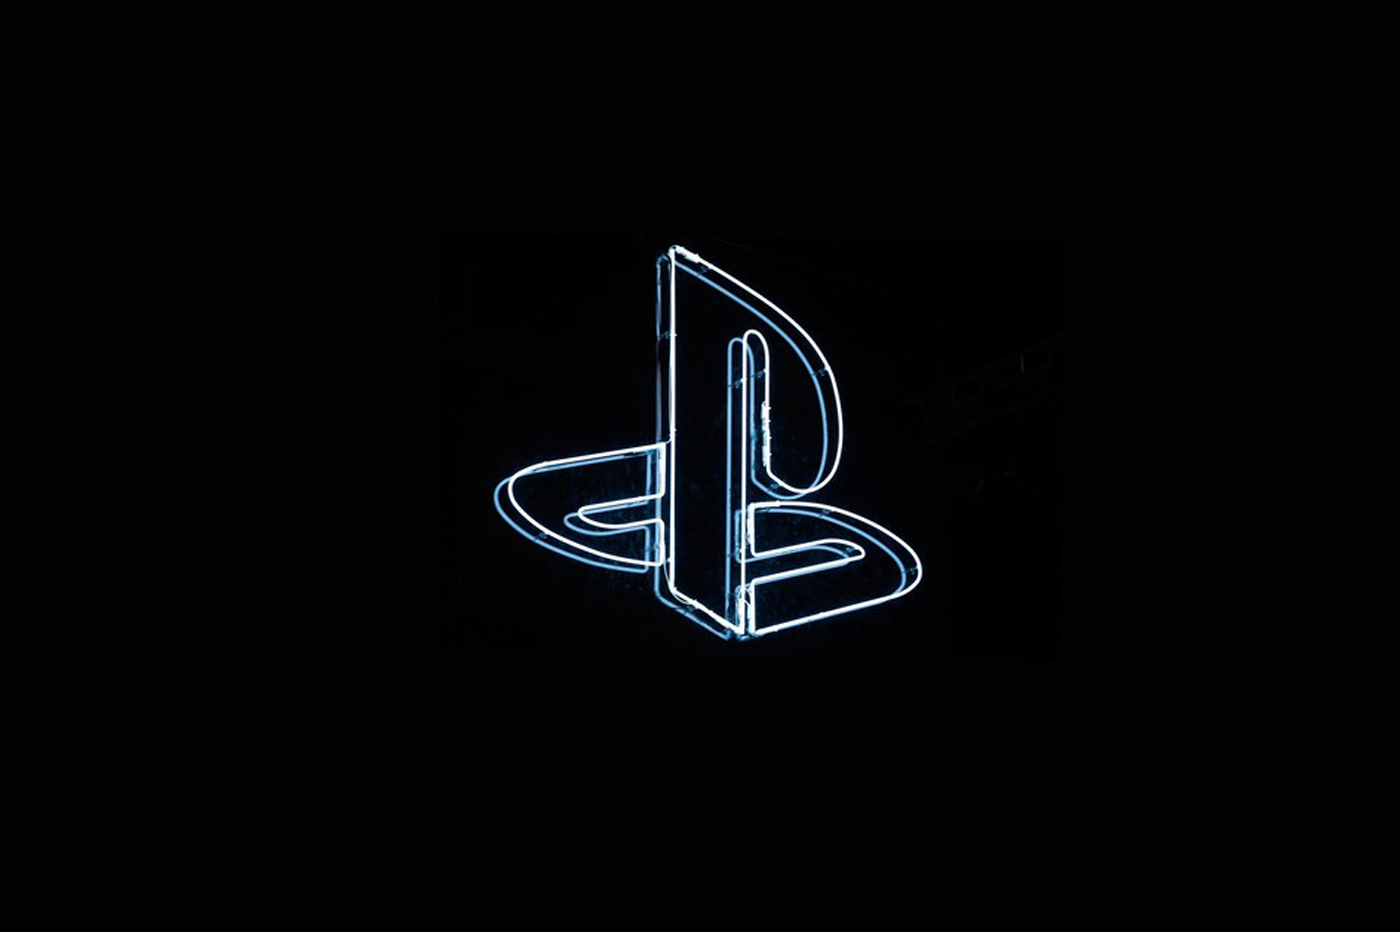 Sony confirme une PlayStation 5 pour fin 2020